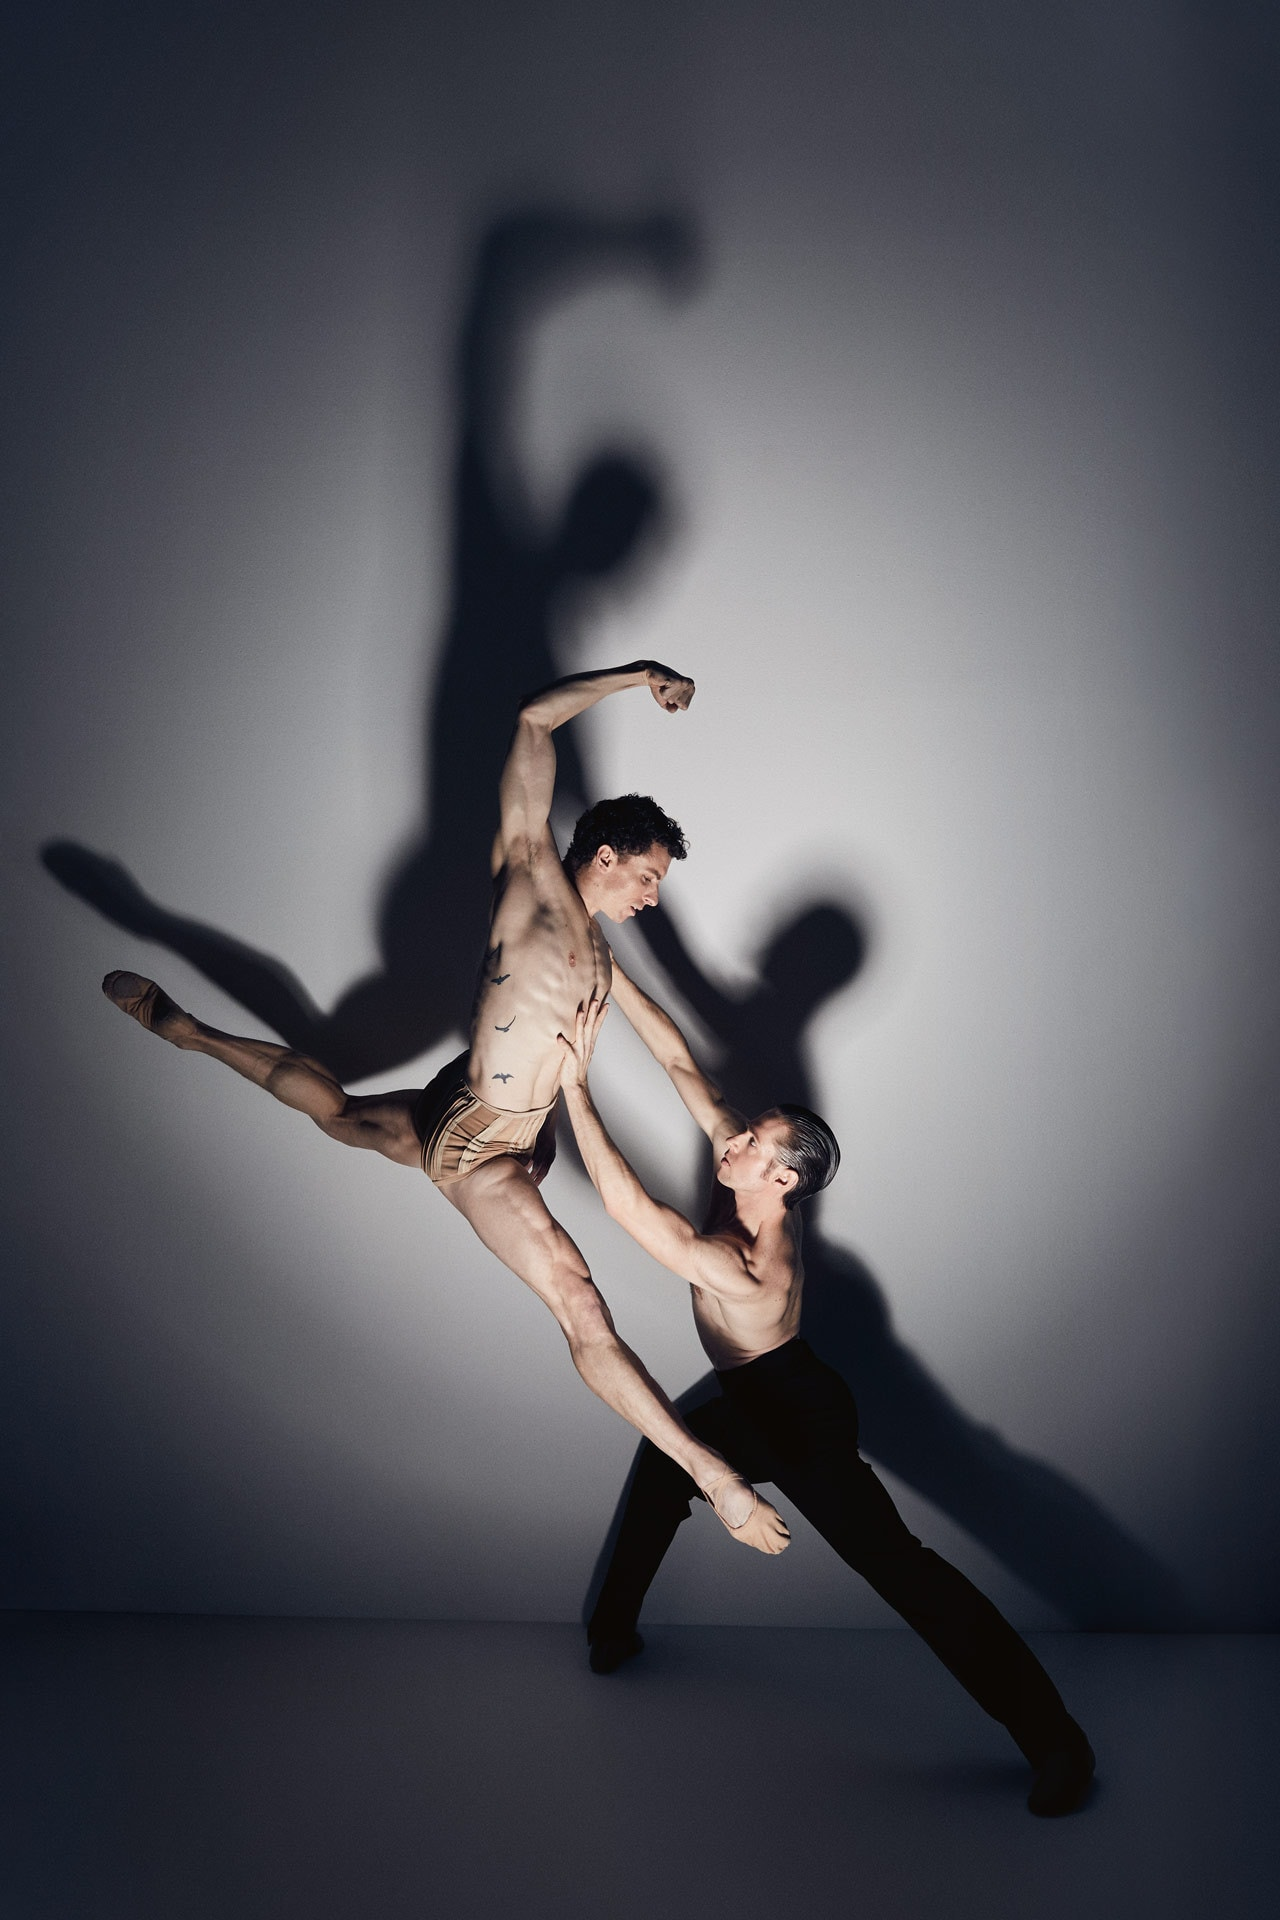 Go inside The Australian Ballet's stunning new production of Spartacus